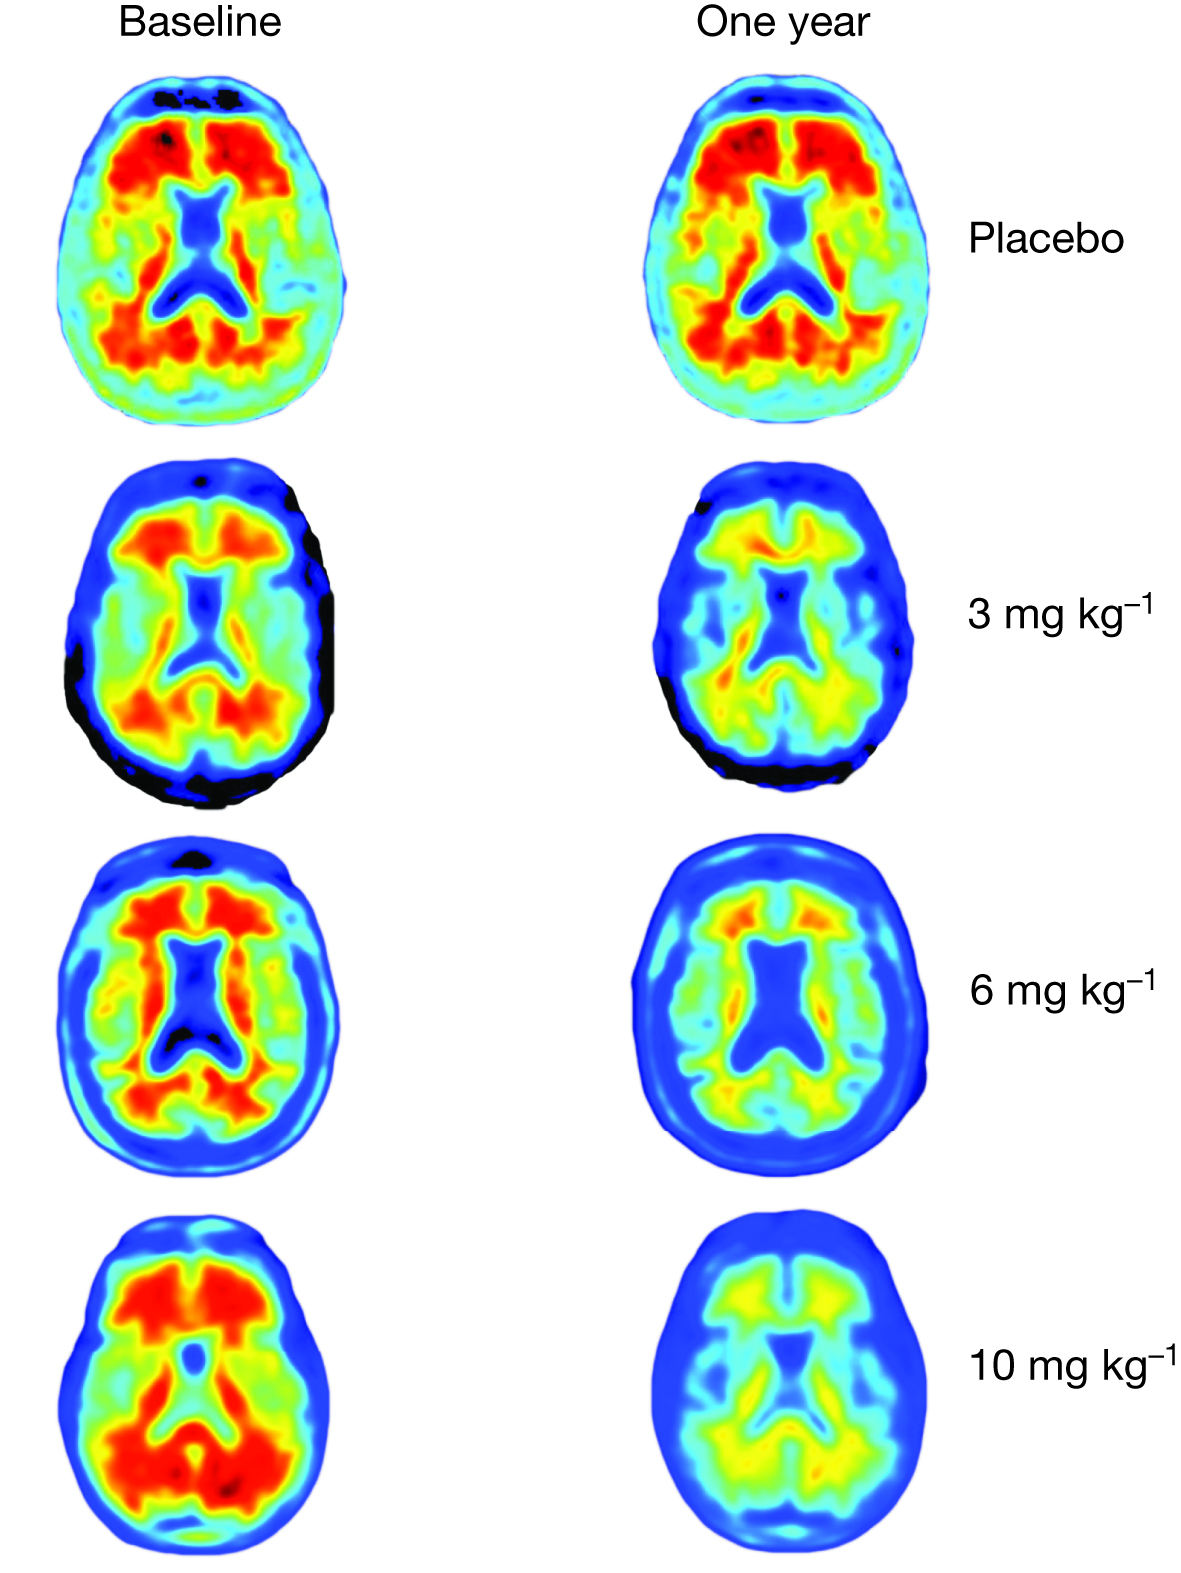 Brain imaging comparison of amyloid plaques (red) in those given placebo and those given aducanumab over the course of a year.